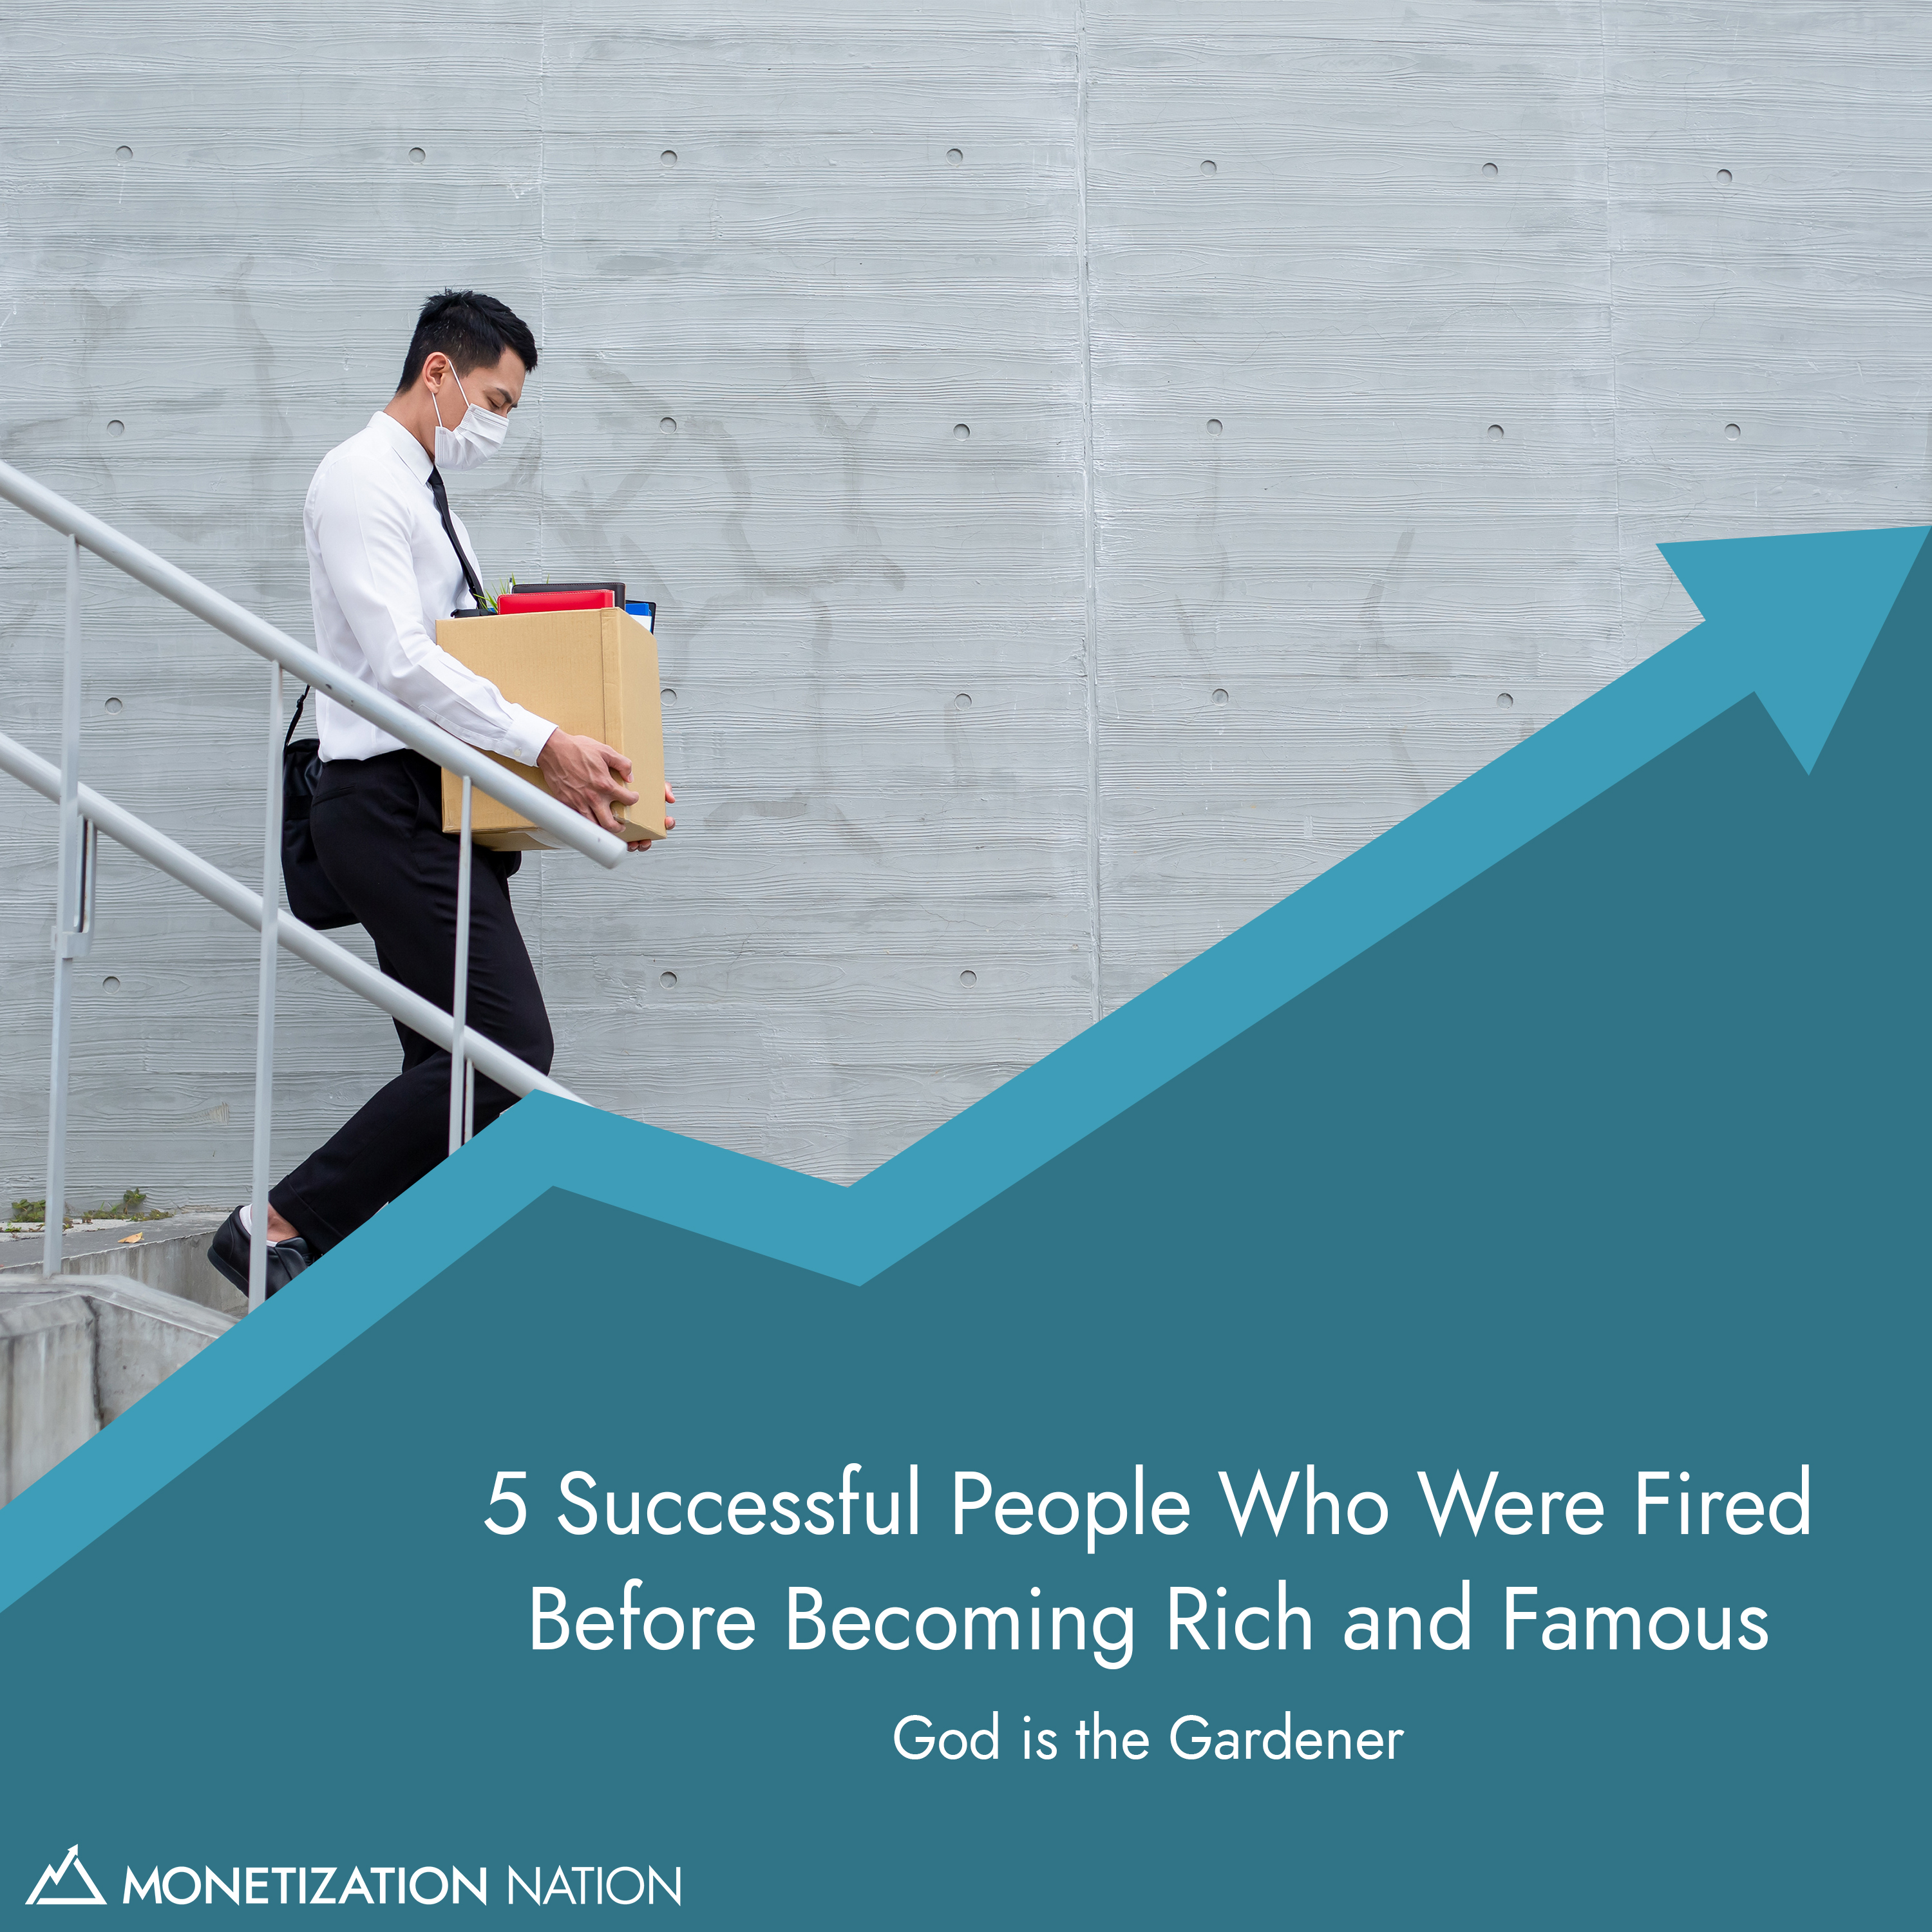 101. 5 Successful People Who Were Fired Before Becoming Rich and Famous